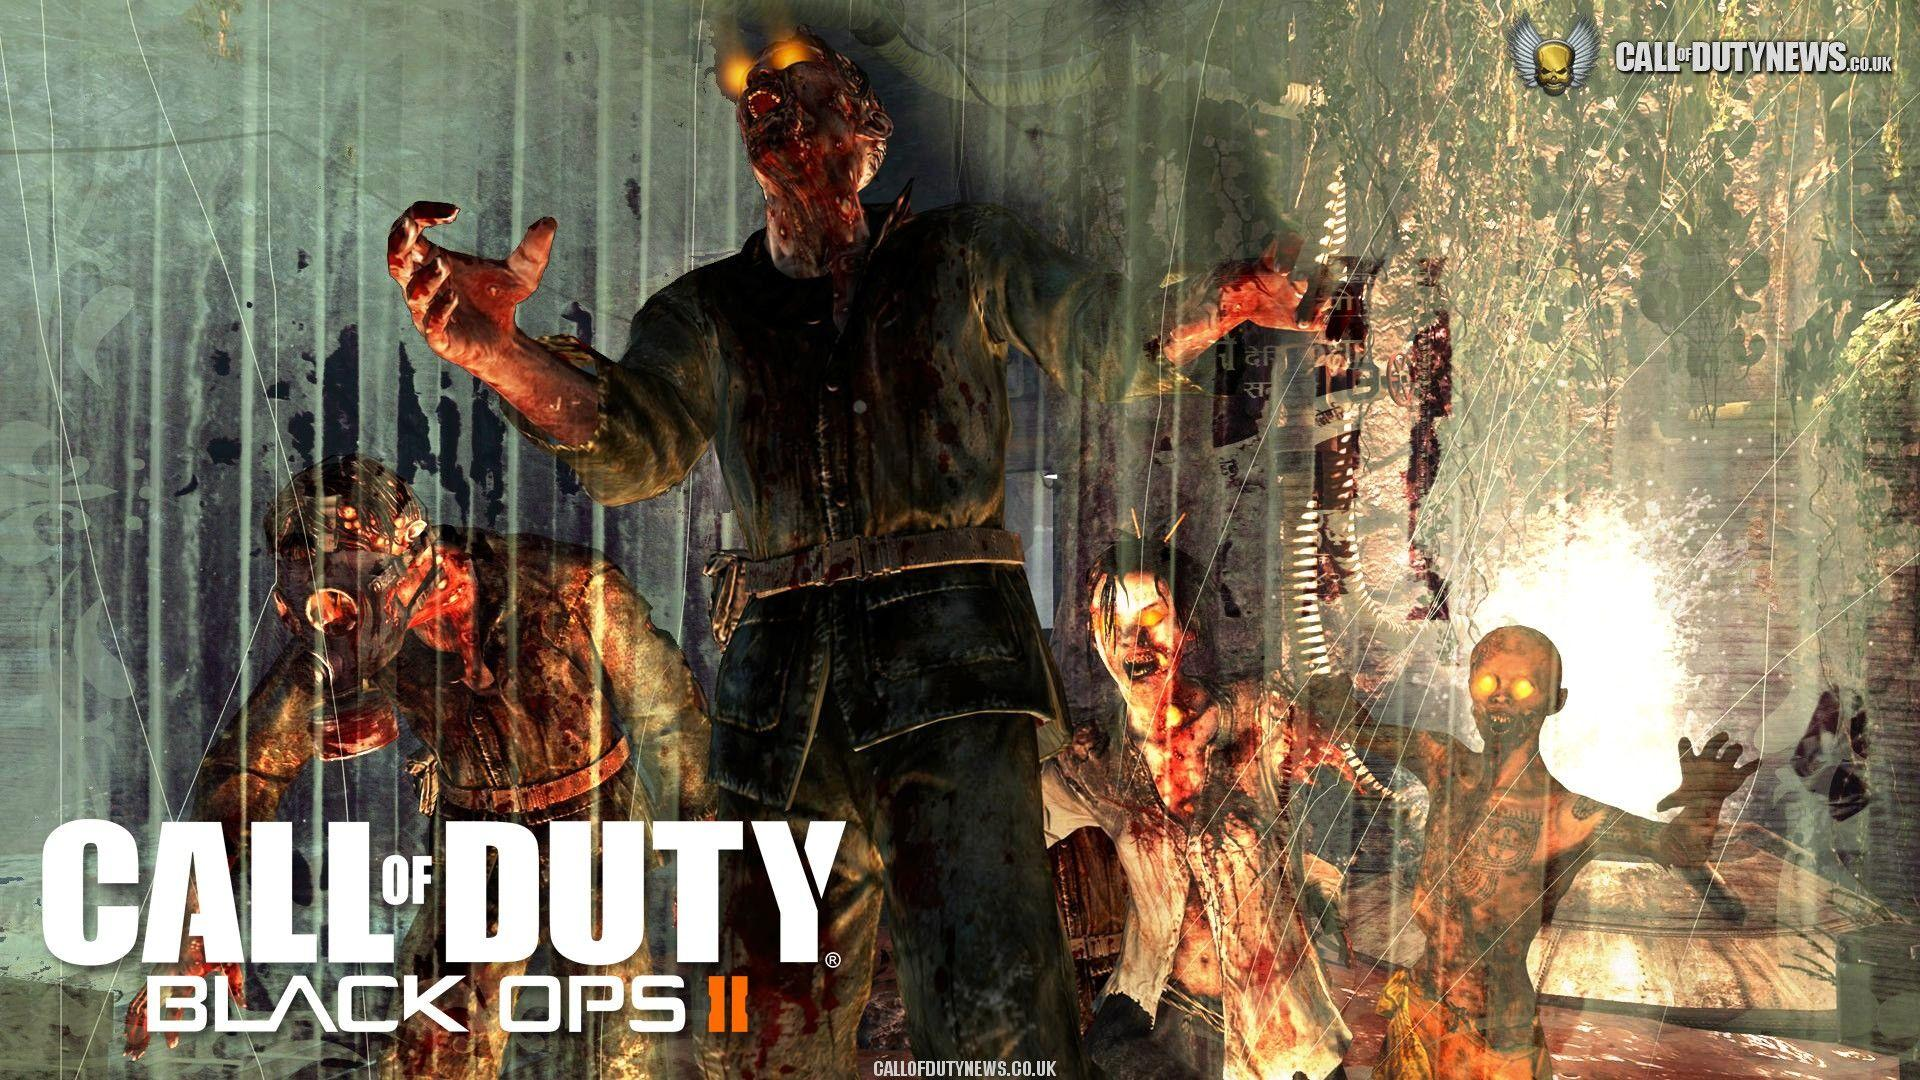 Call of duty black ops 3 zombies wallpaper – Free full hd .